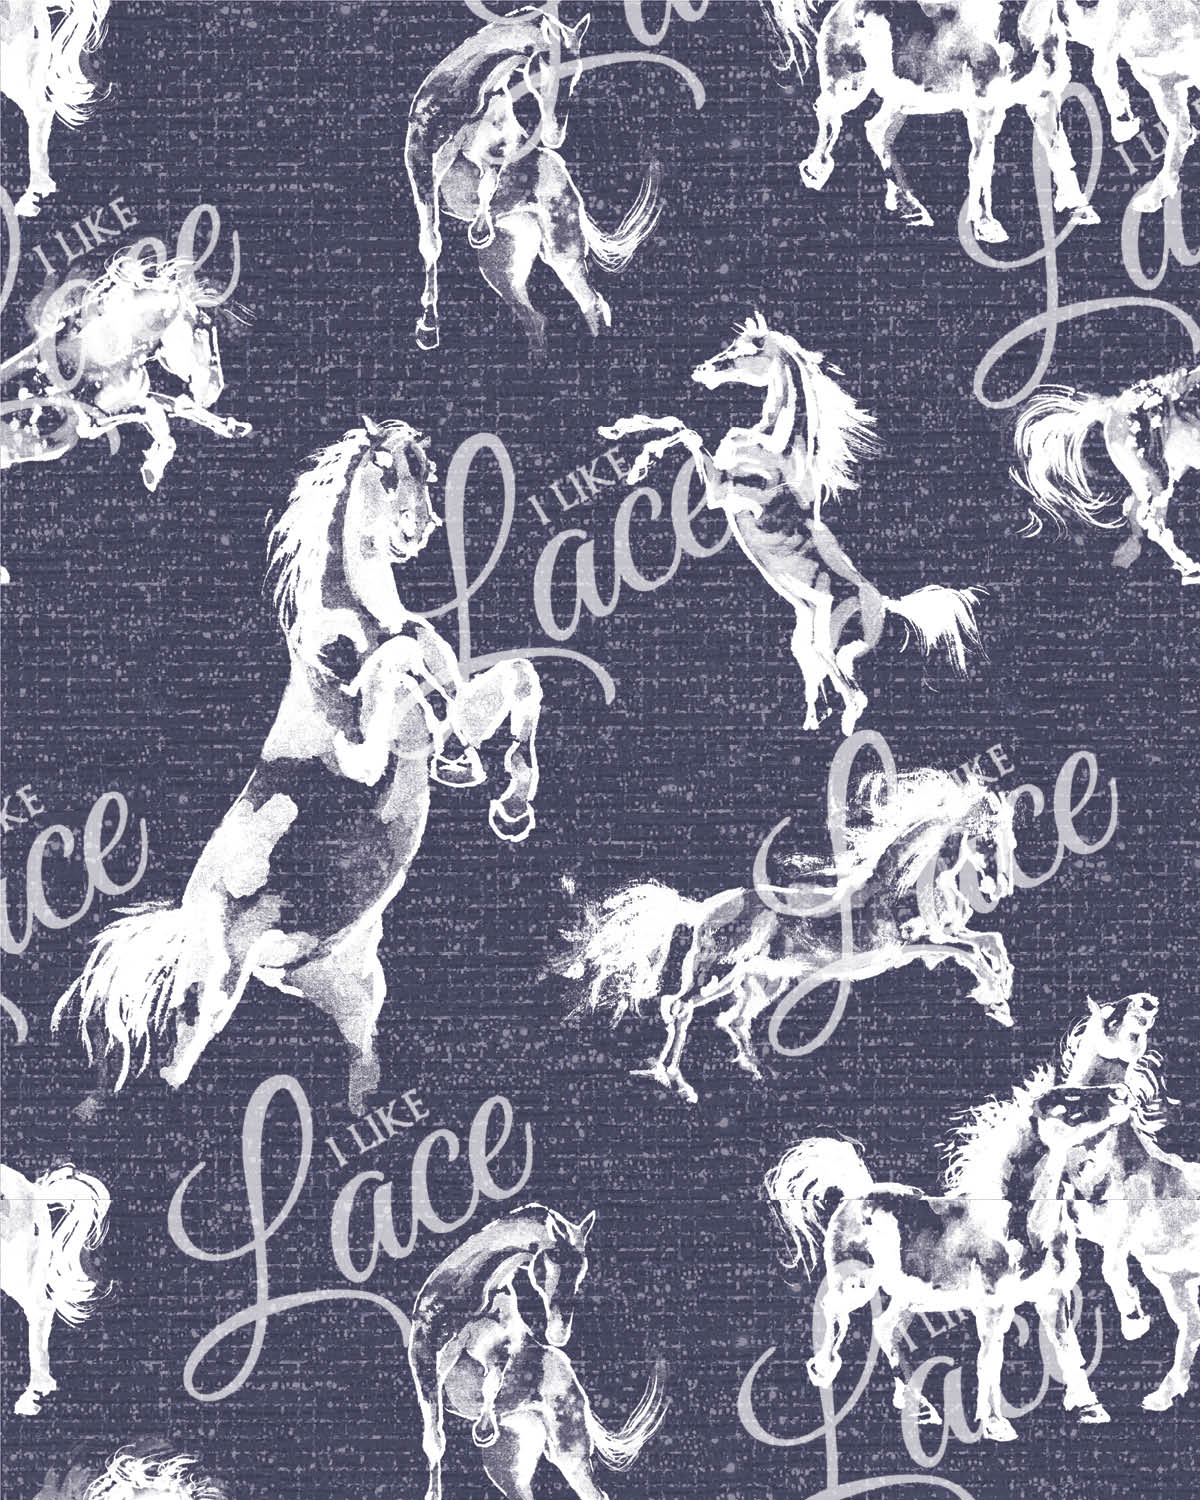 blue farm horse knit fabric for children's clothing